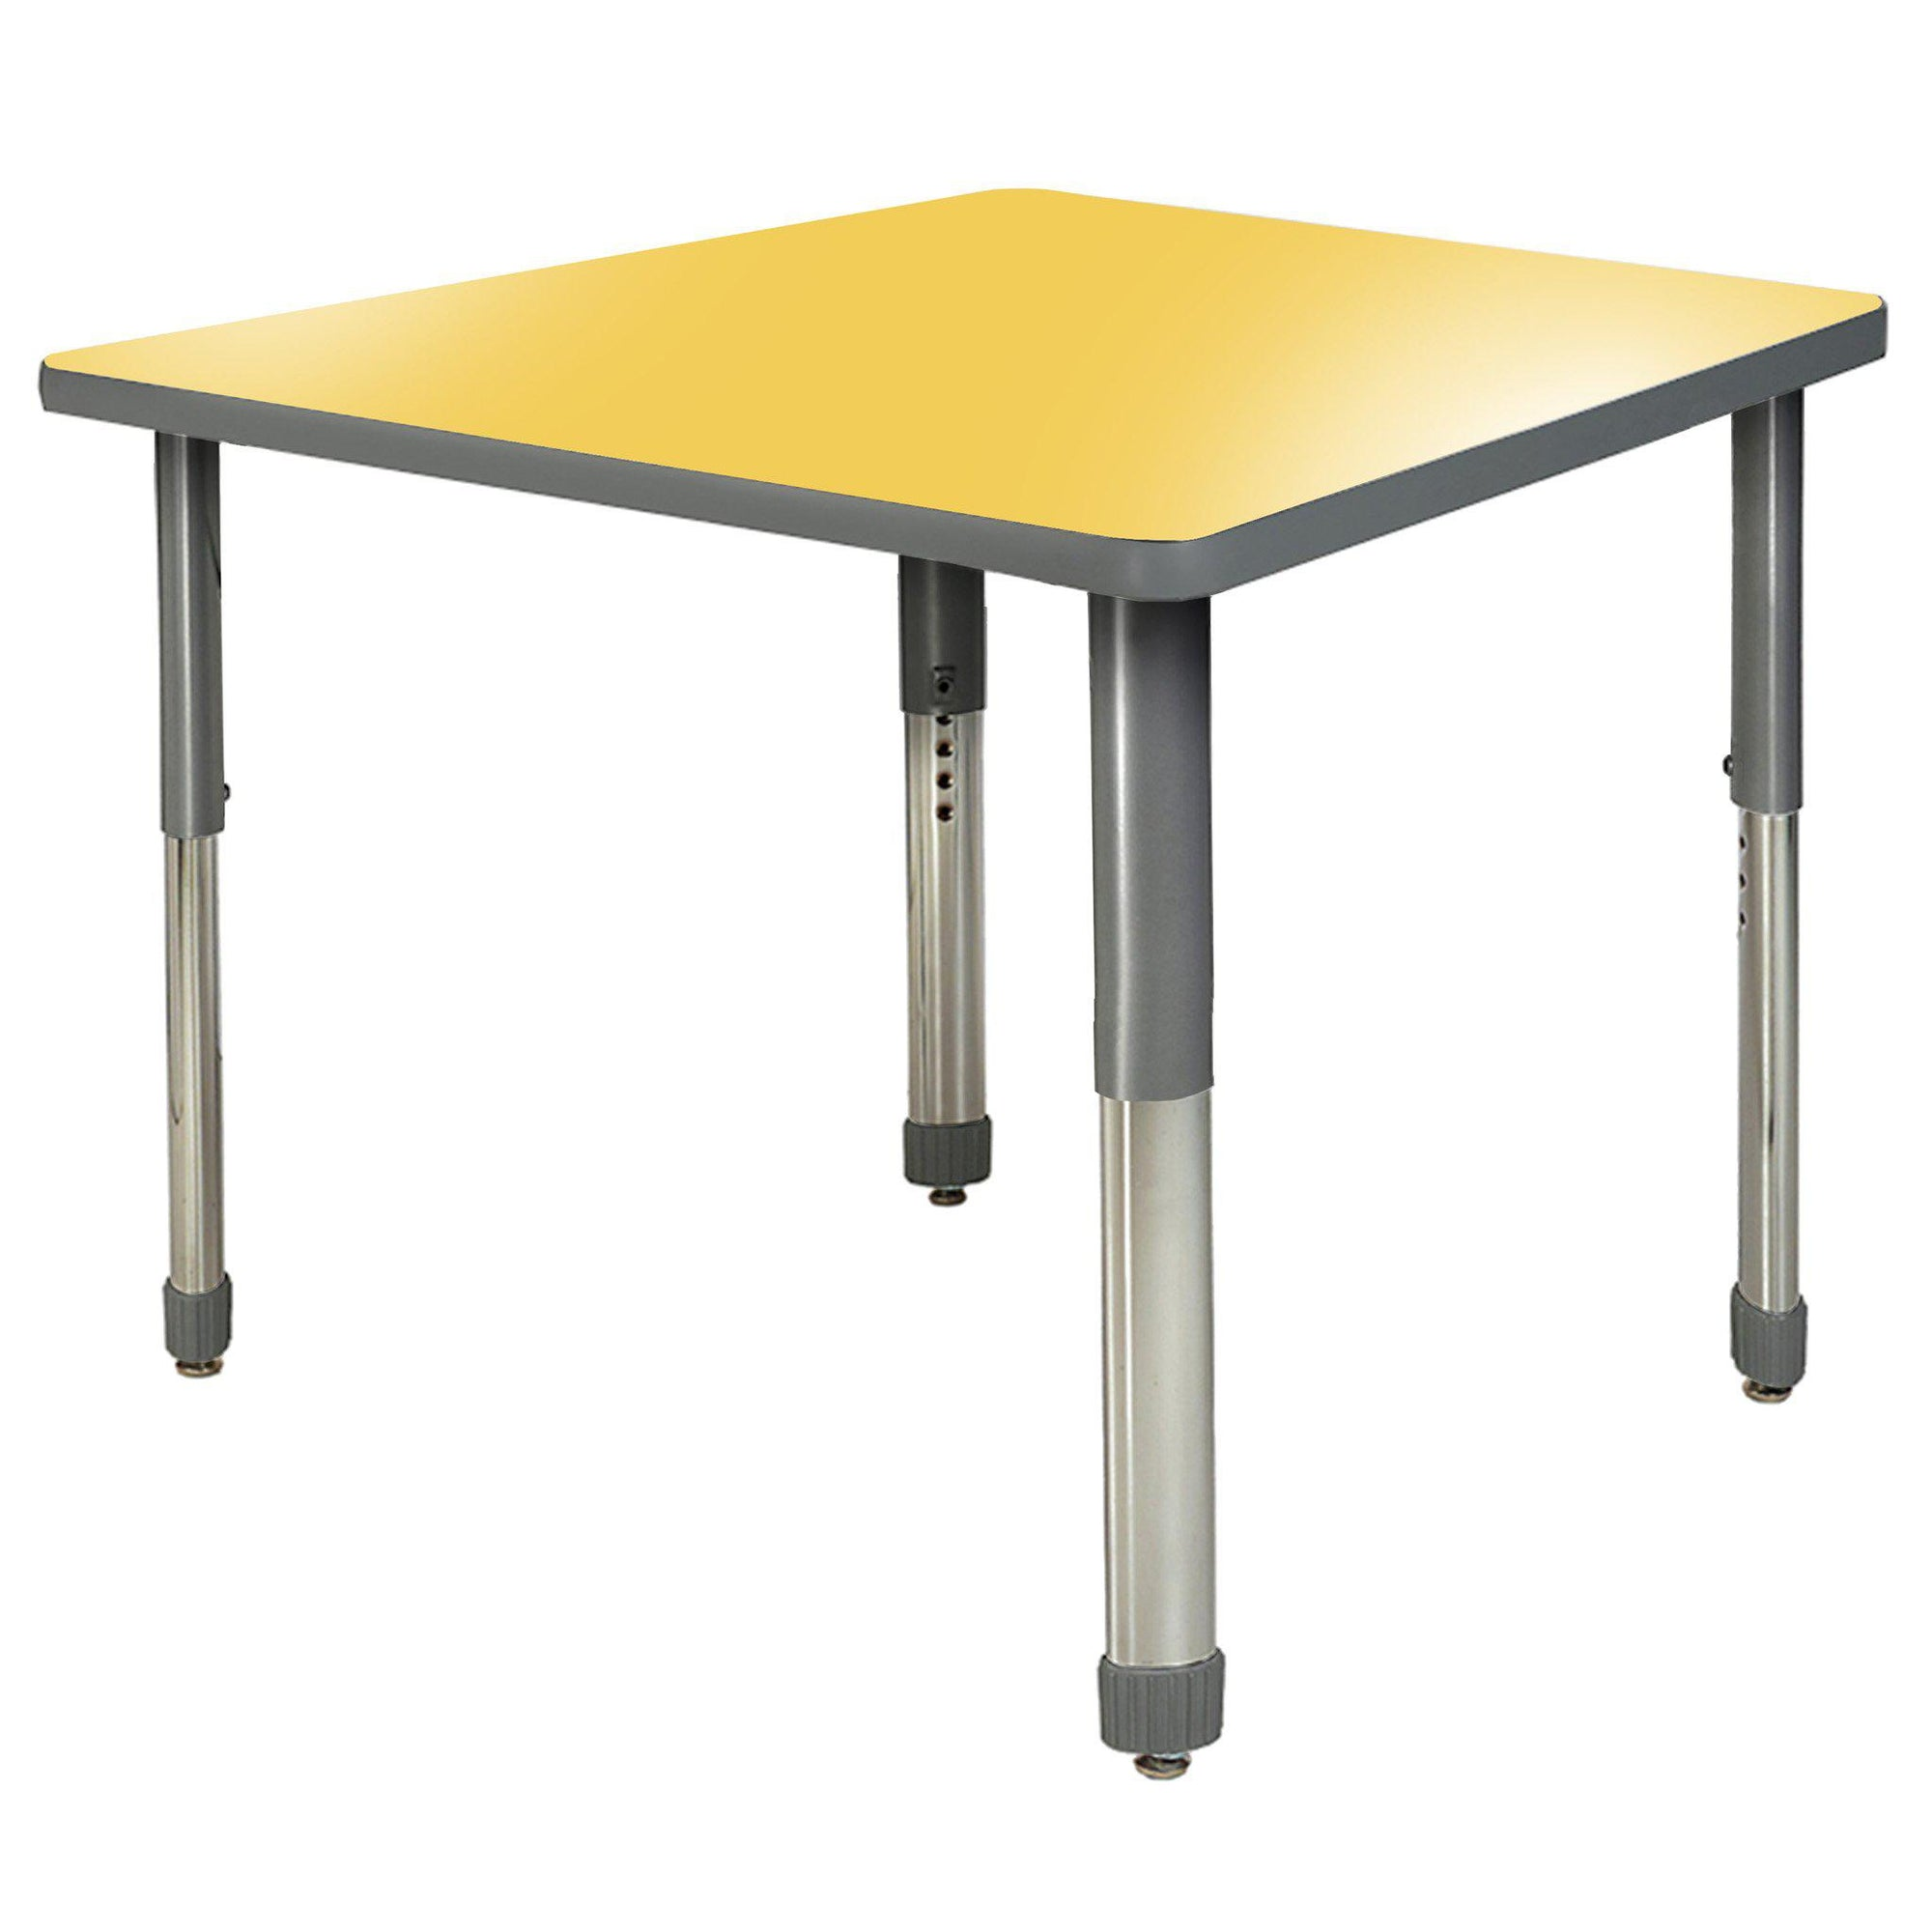 "Aero Activity Table, 42"" x 42"" Square, Oval Adjustable Height Legs"